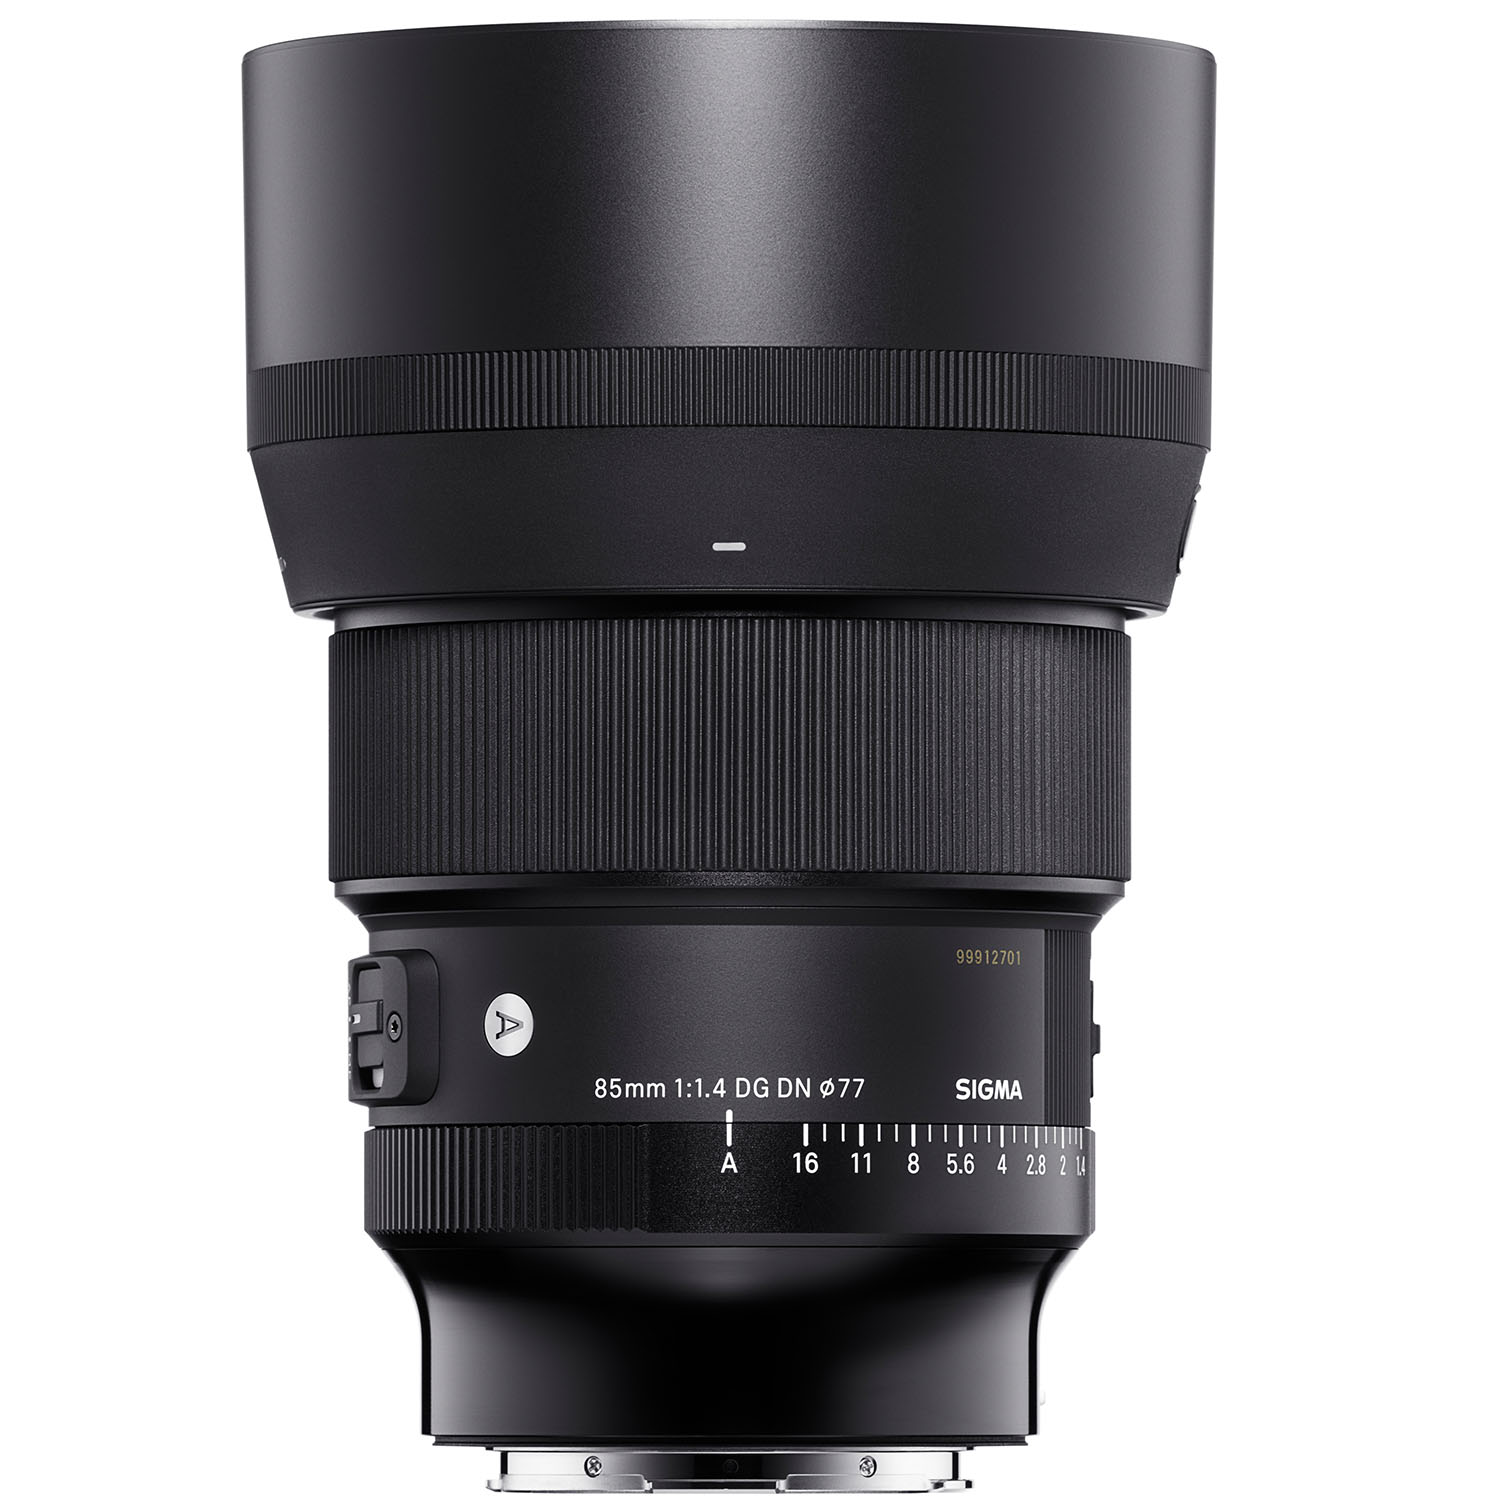 Sigma is announcing a newly designed 85mm f/1.4 Art FE for